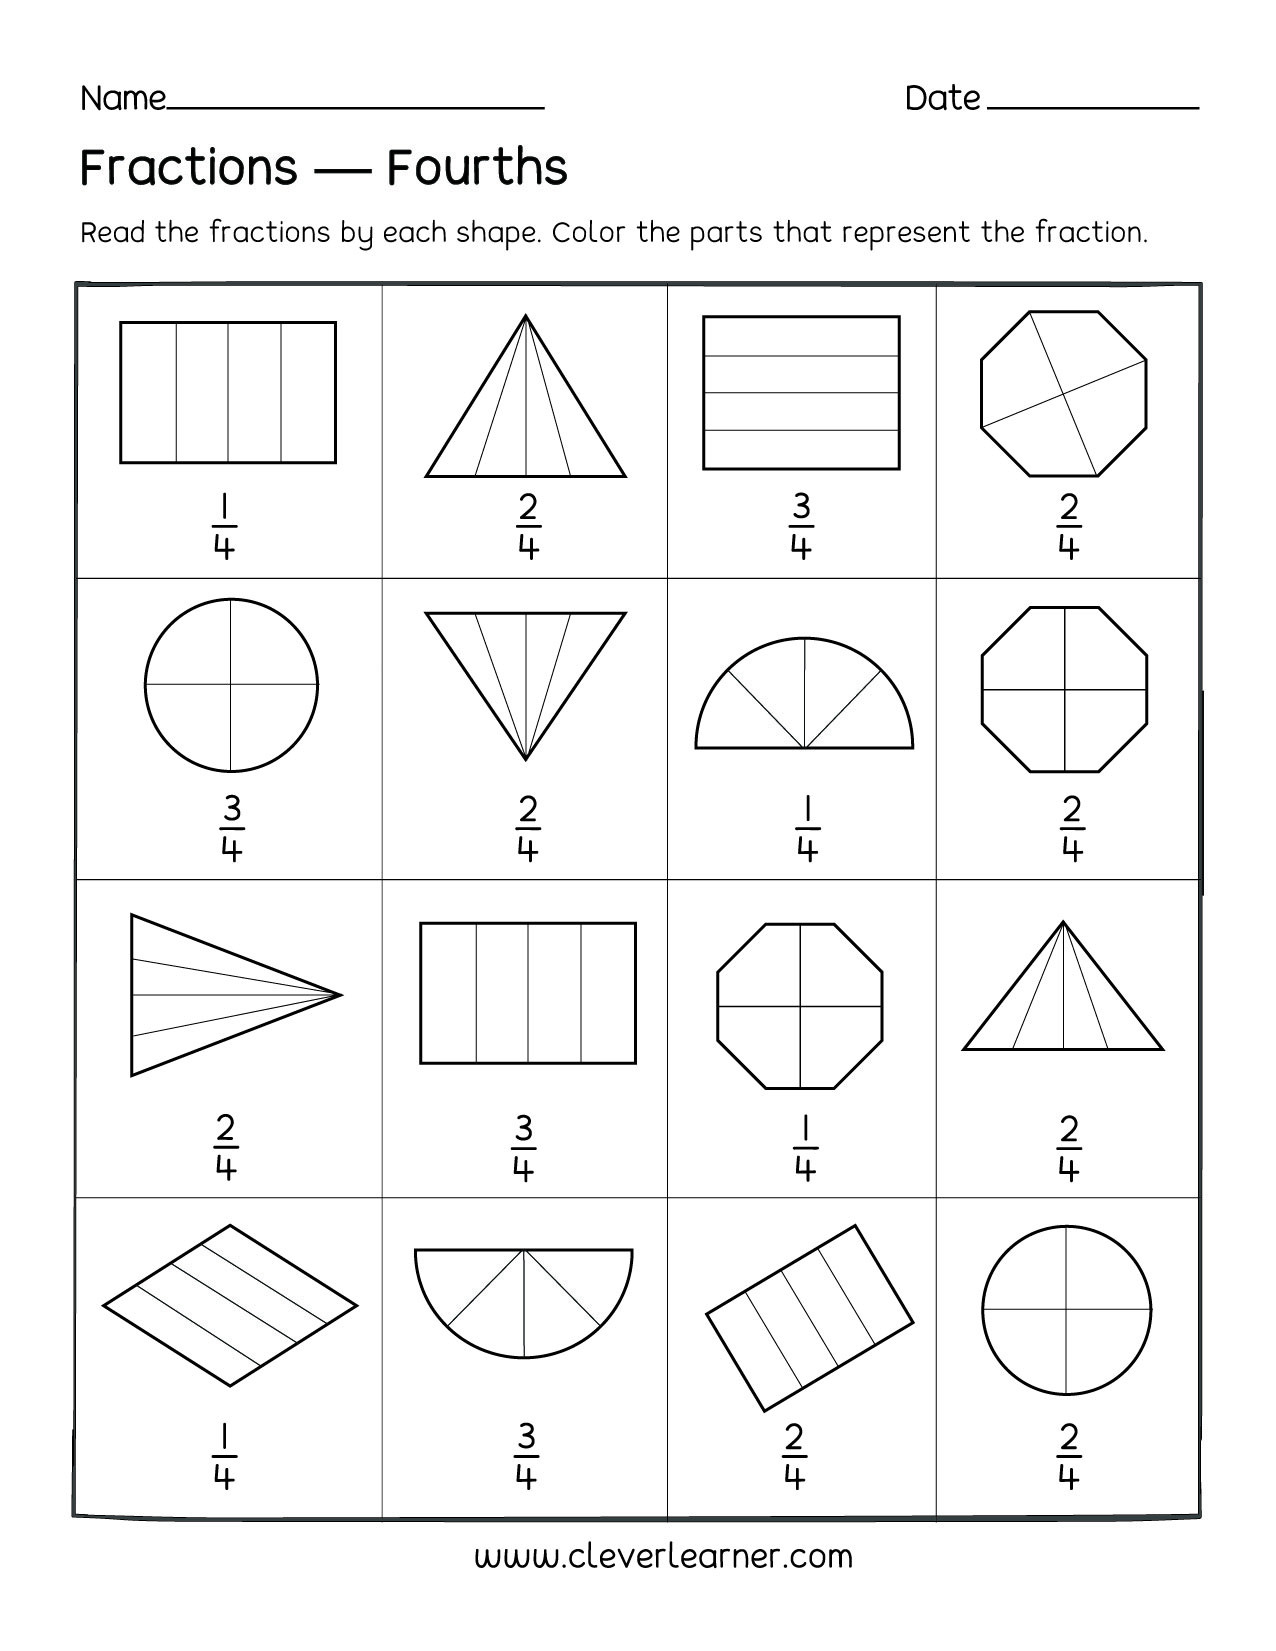 First Grade Fractions Worksheets Fun Activity On Fractions Fourths Worksheets for Children